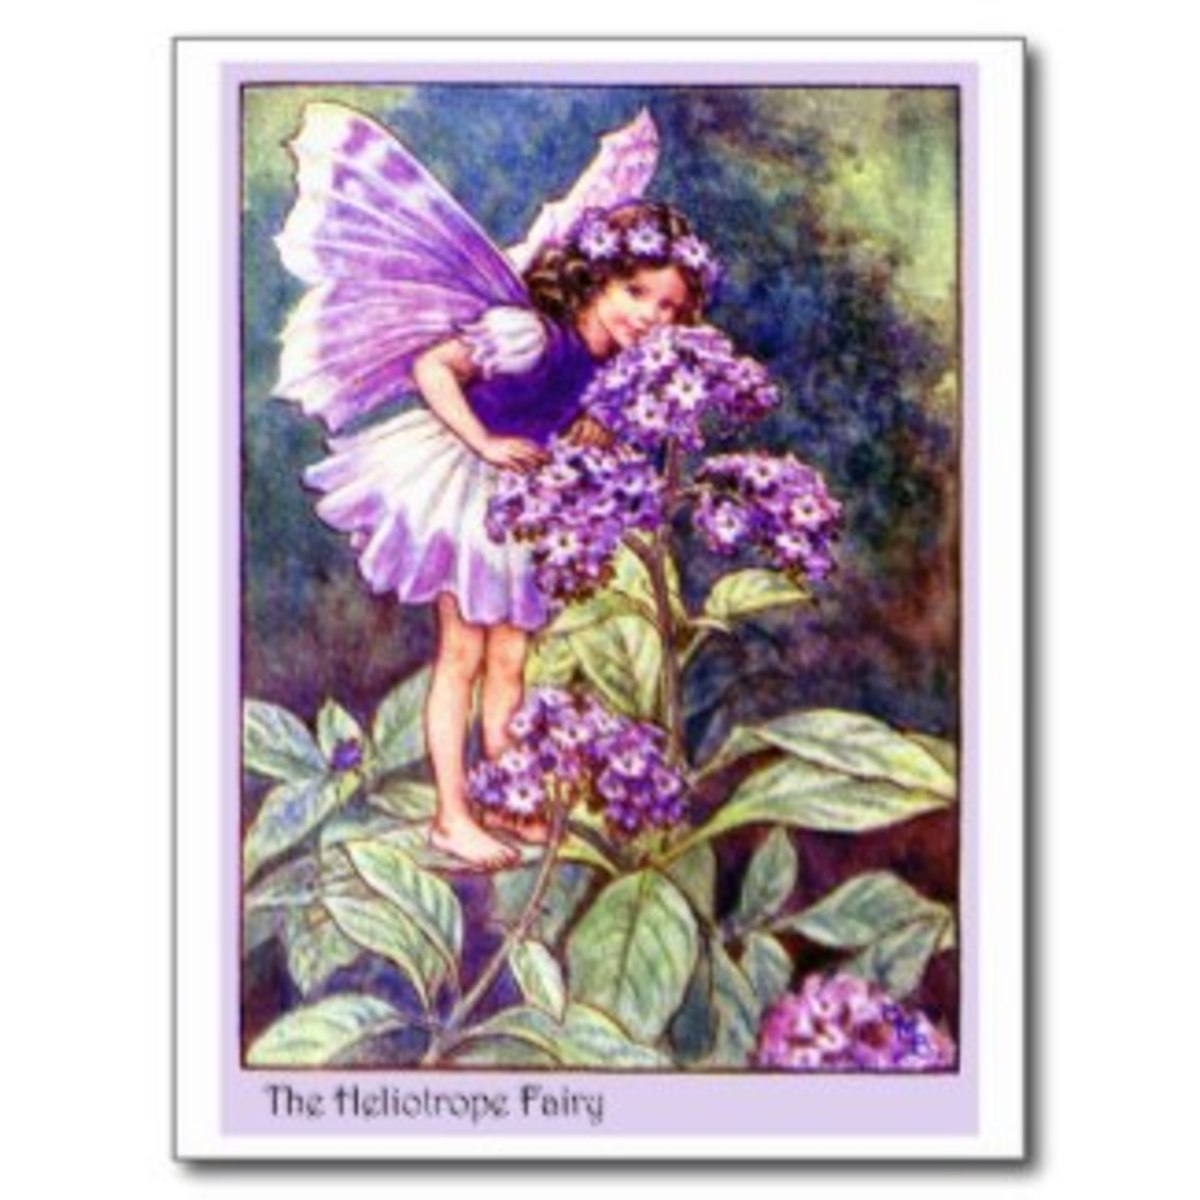 A sweet heliotrope fairy enjoying the garden. I love these vintage graphics. They help me imagine the flower fairies stopping by to see what I've done lately with my tiny garden.